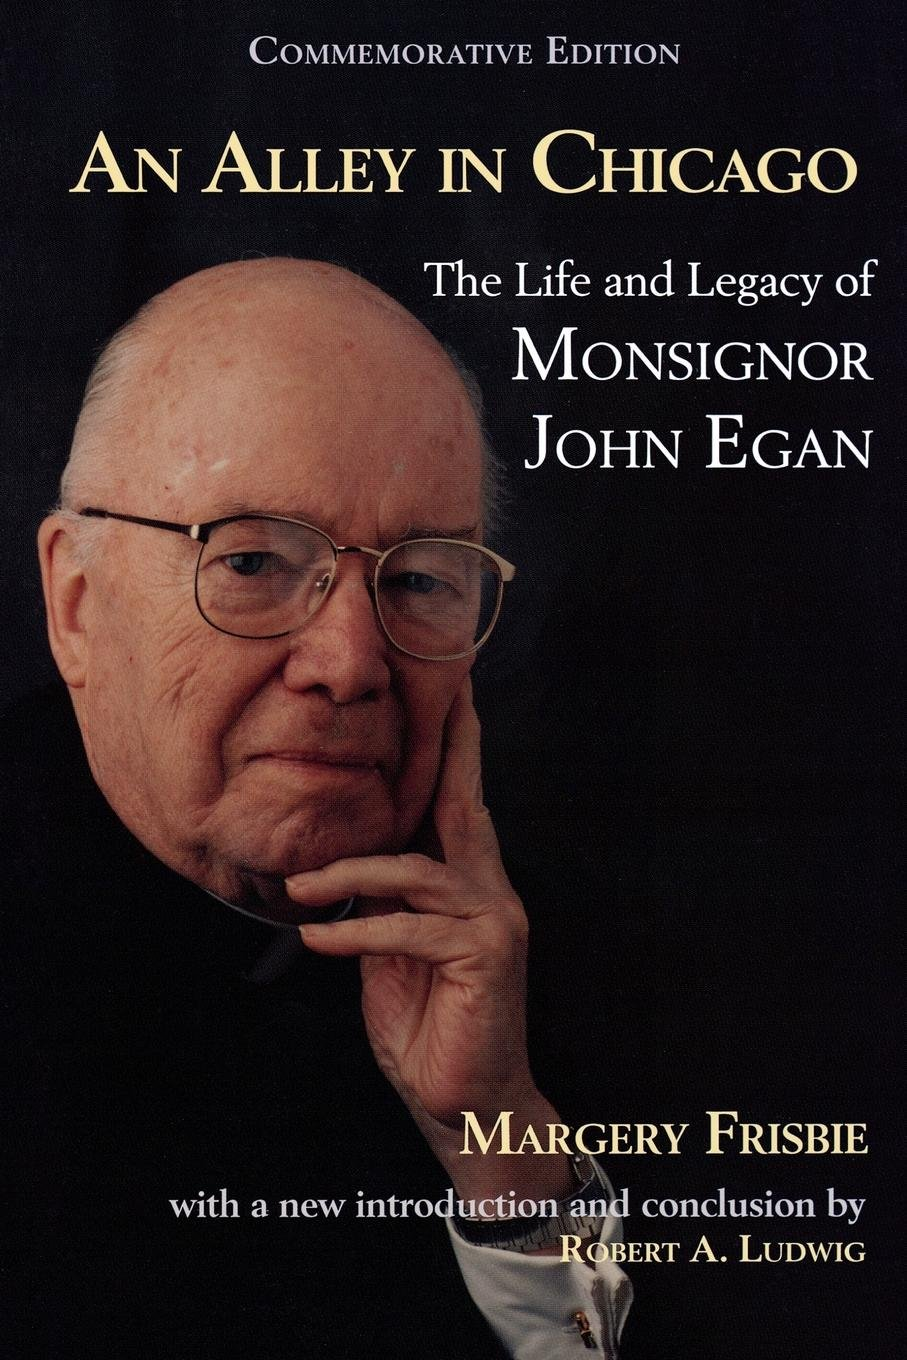 An Alley in Chicago: The Life and Legacy of Monsignor John Egan pdf